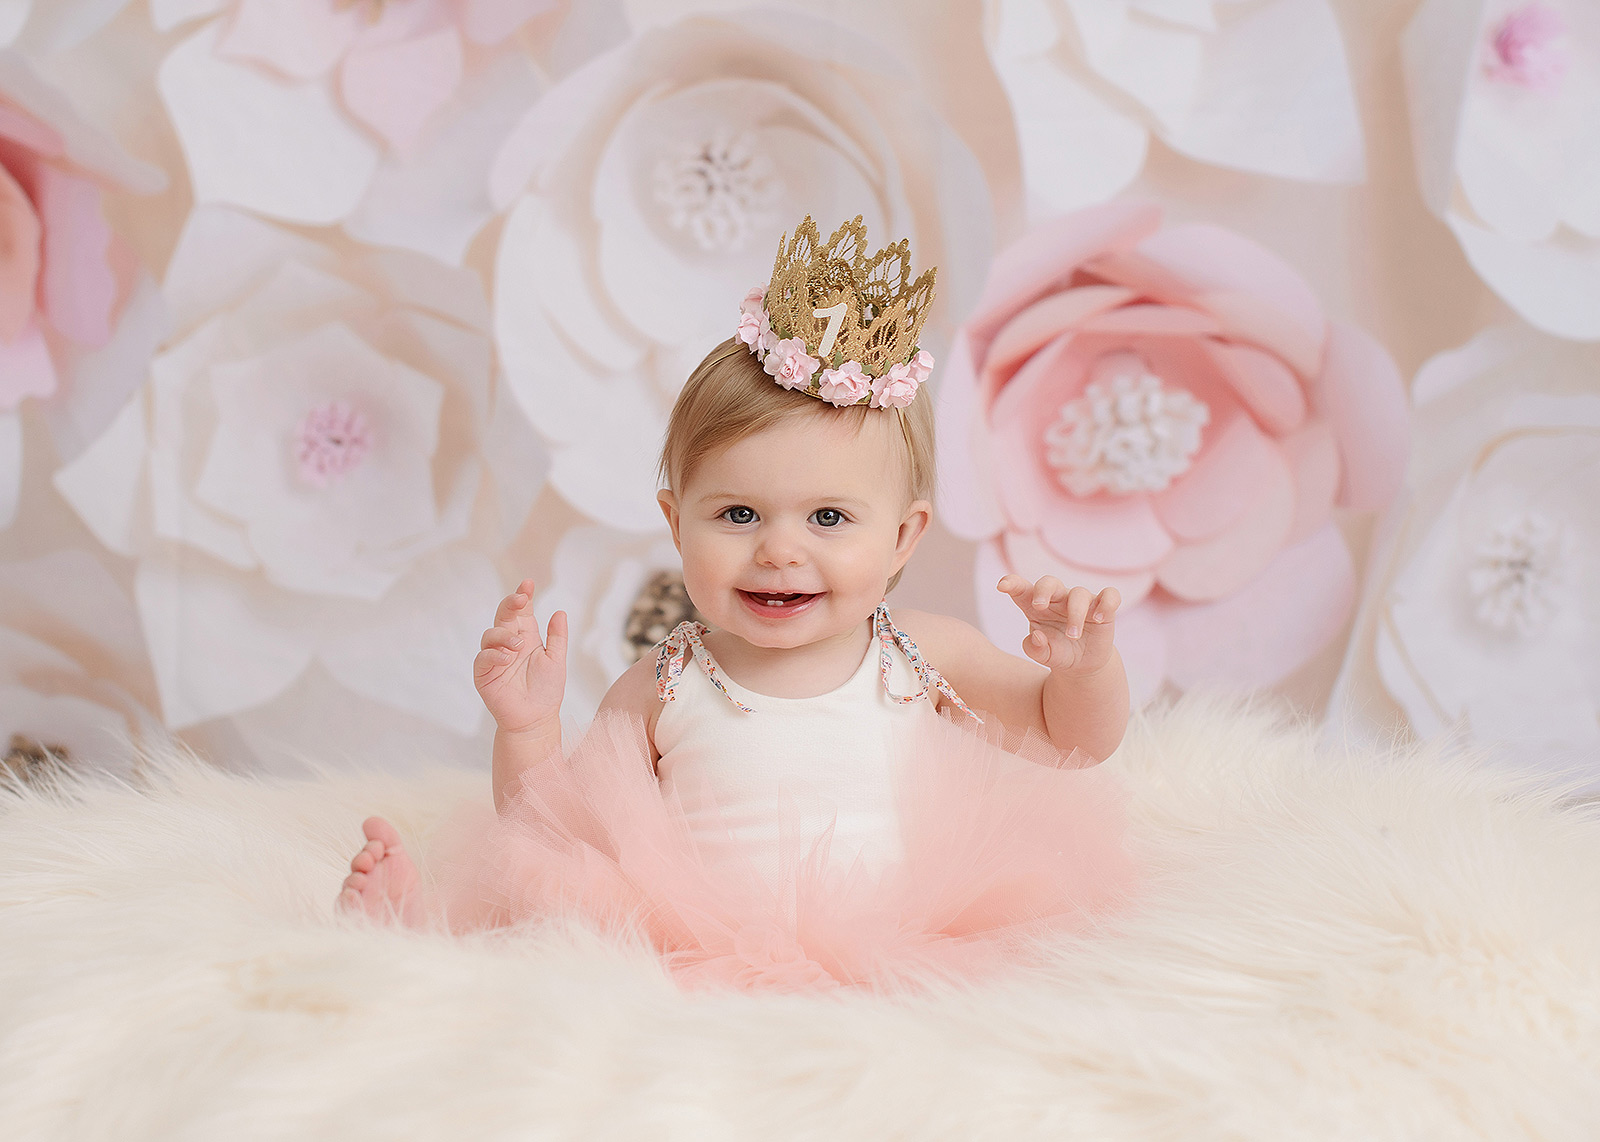 One year old girl wearing pink tutu and crown against floral backdrop in Sacramento portrait studio